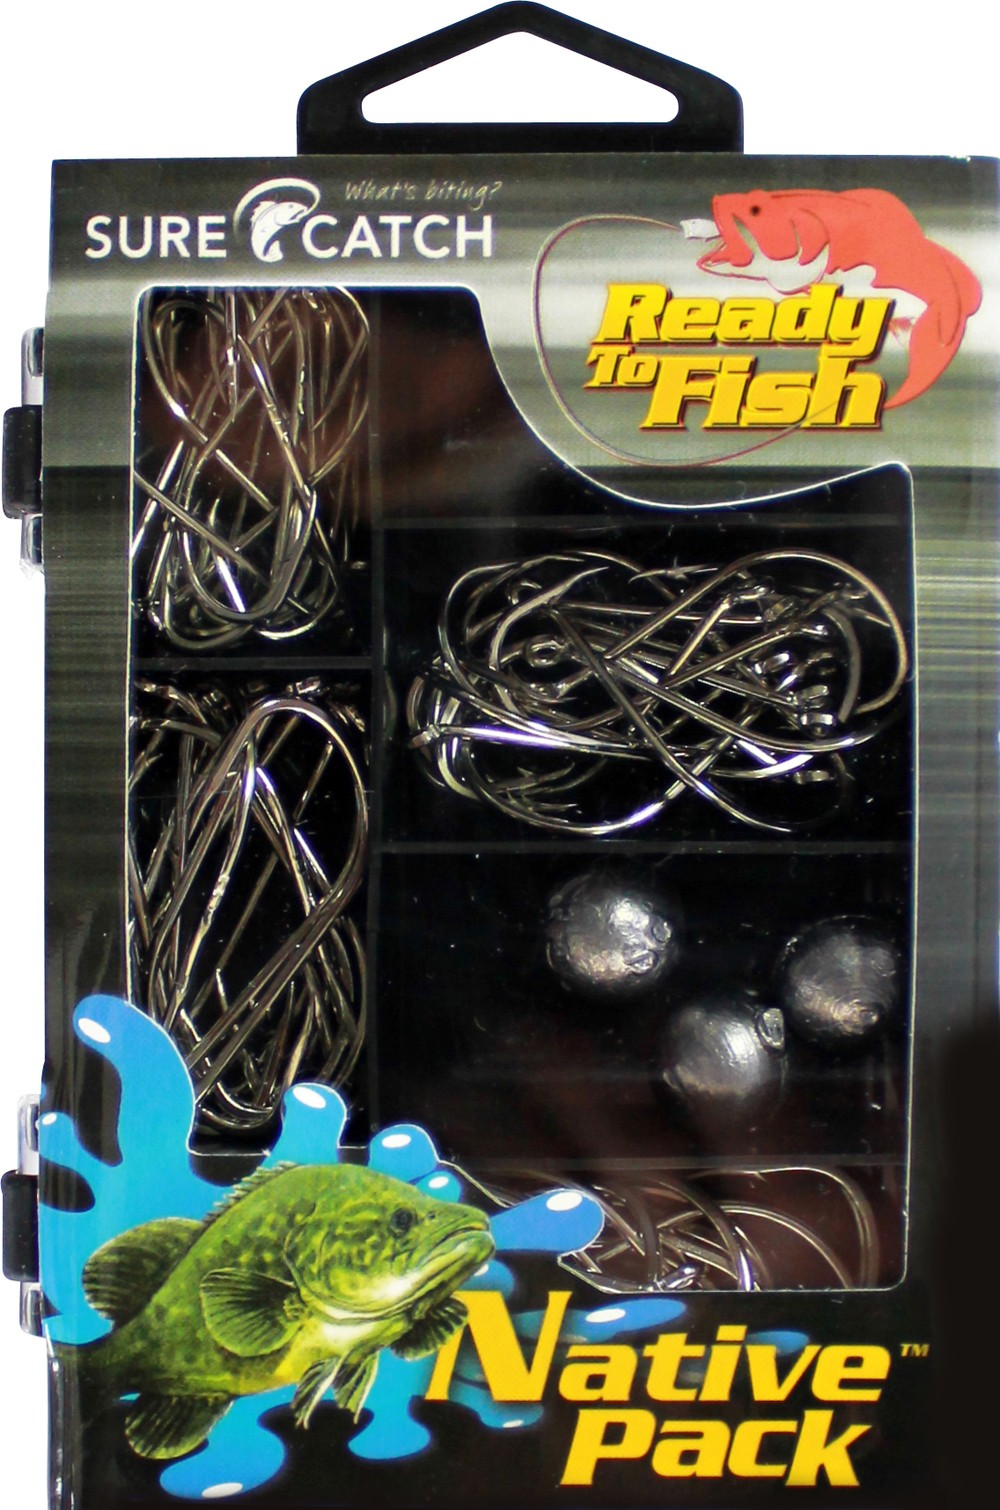 Sure Catch Tackle Essentials Native Pack  (1 x Kit)